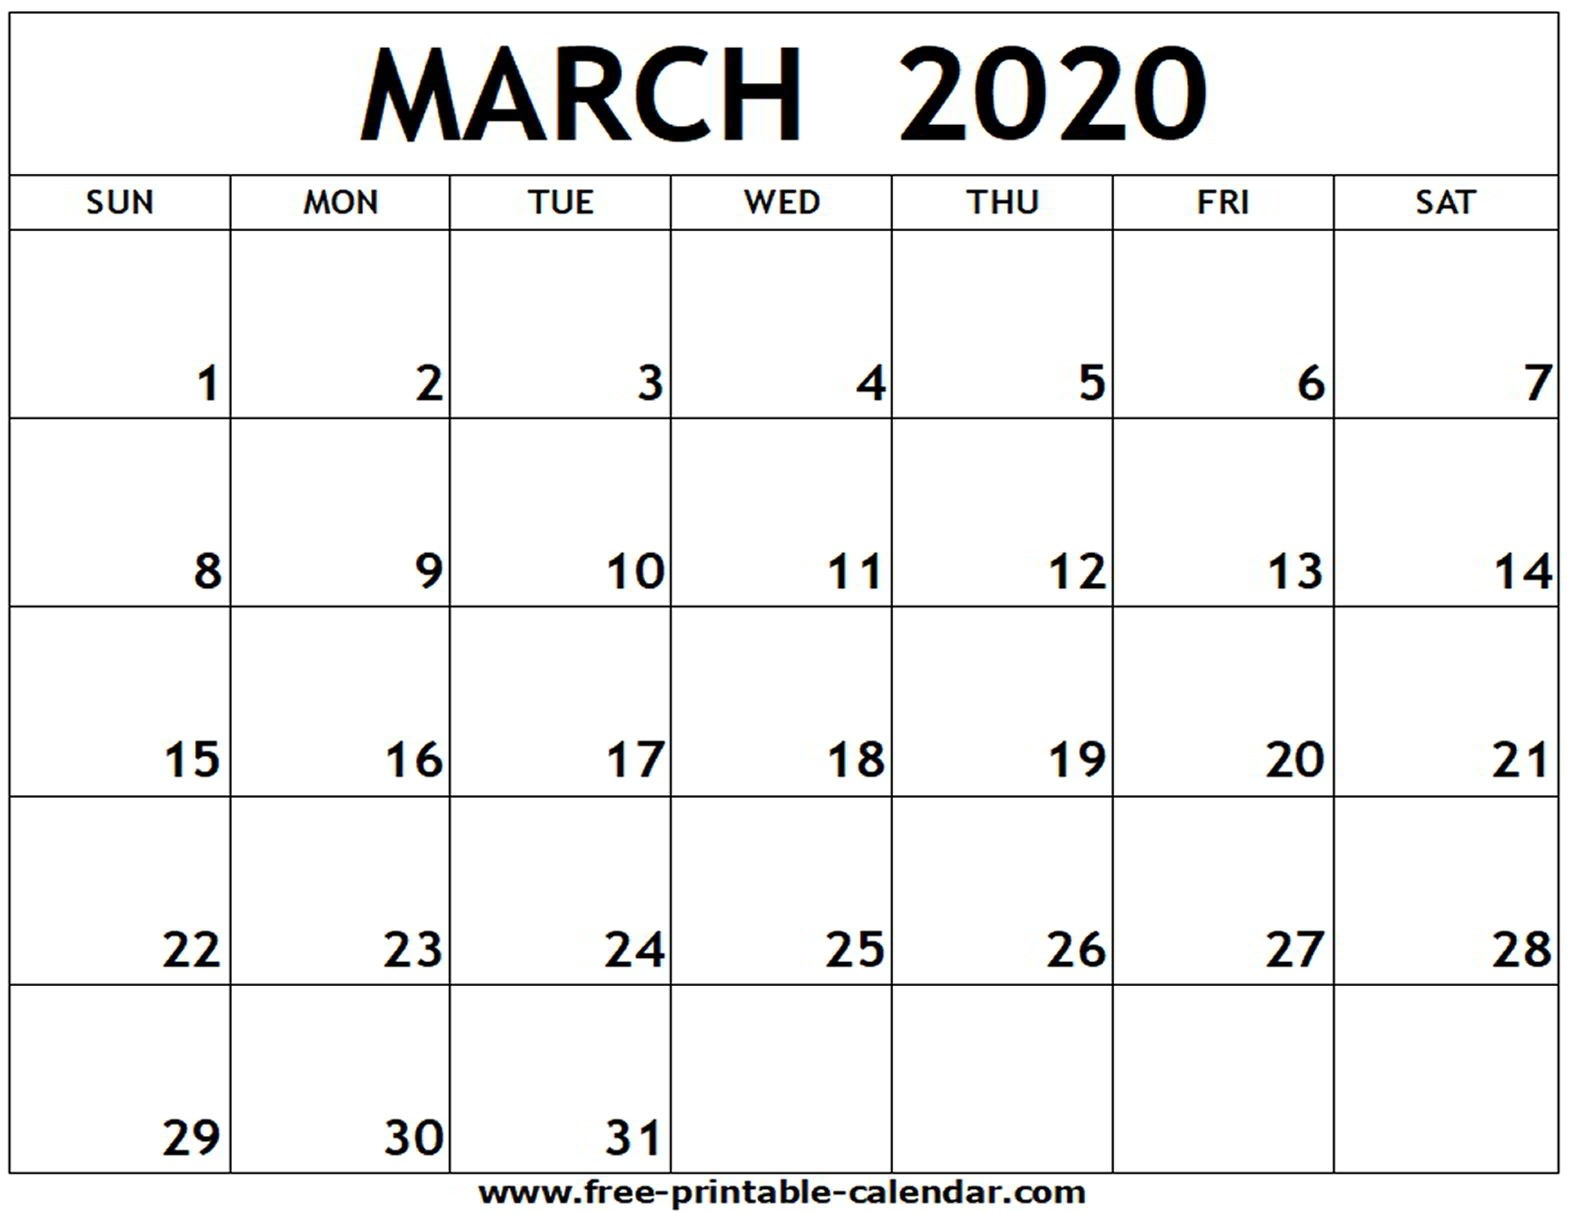 March 2020 Printable Calendar - Free-Printable-Calendar  Free Printable Monthly Calendar March 2020